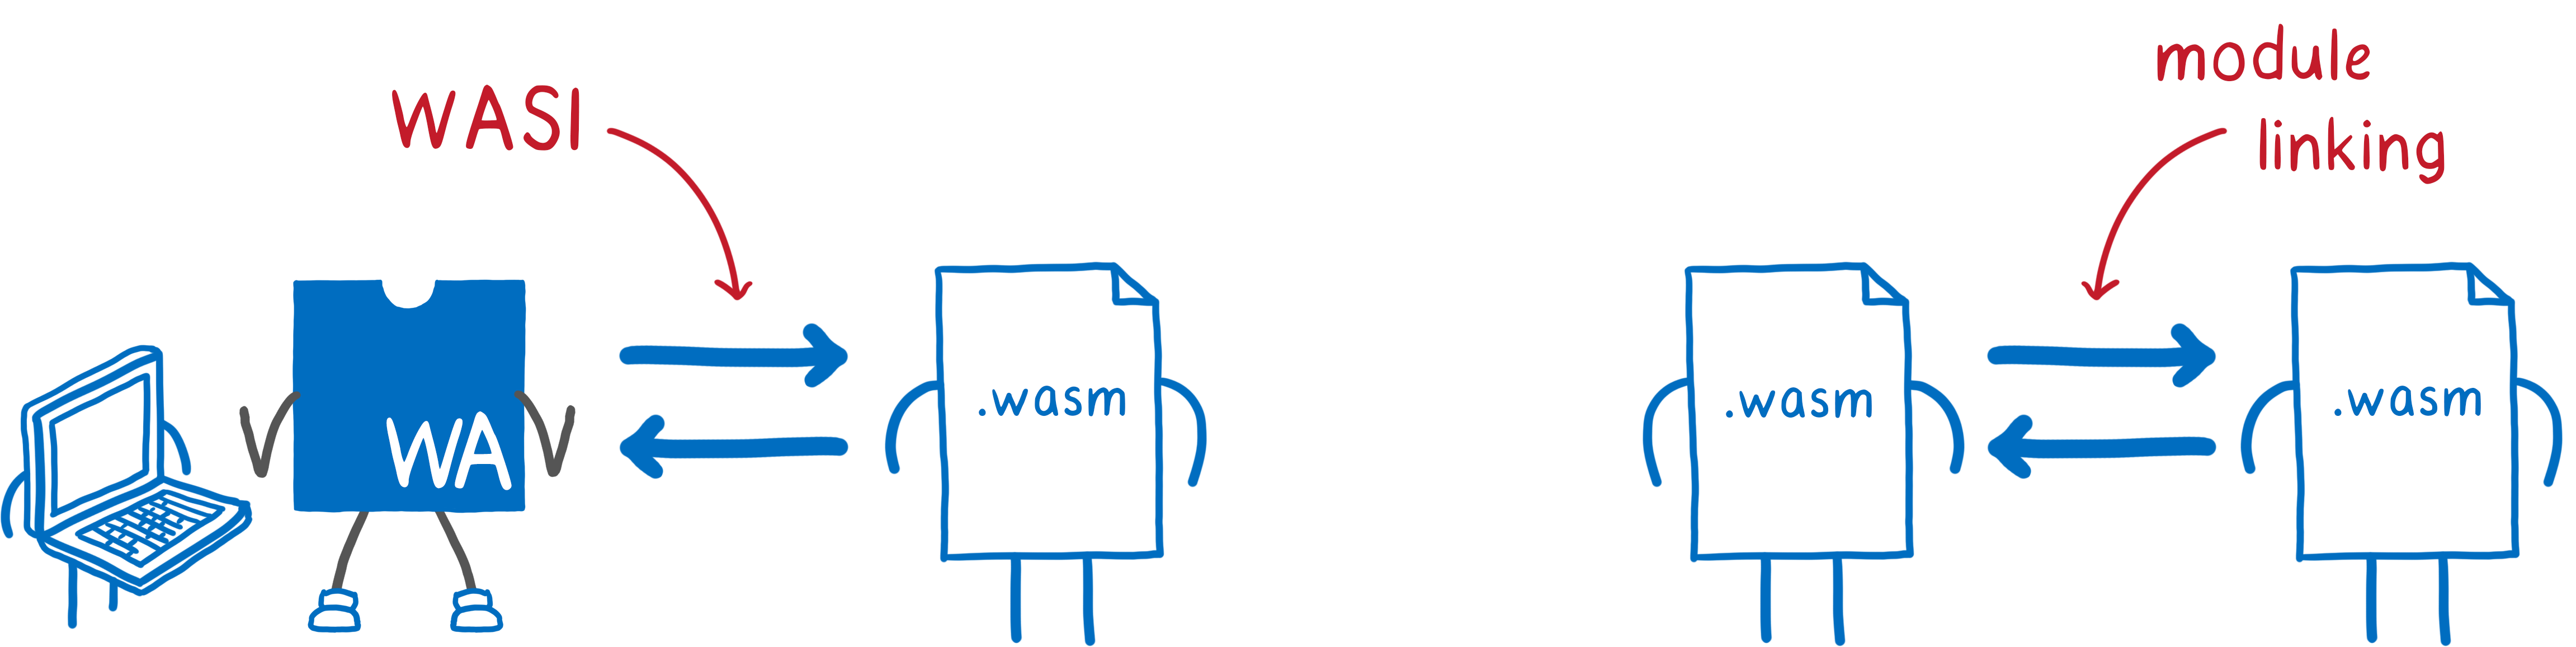 On the left, a WebAssembly module and host talking to each other using WASI. On the right, two WebAssembly modules talking to each other using module linking.